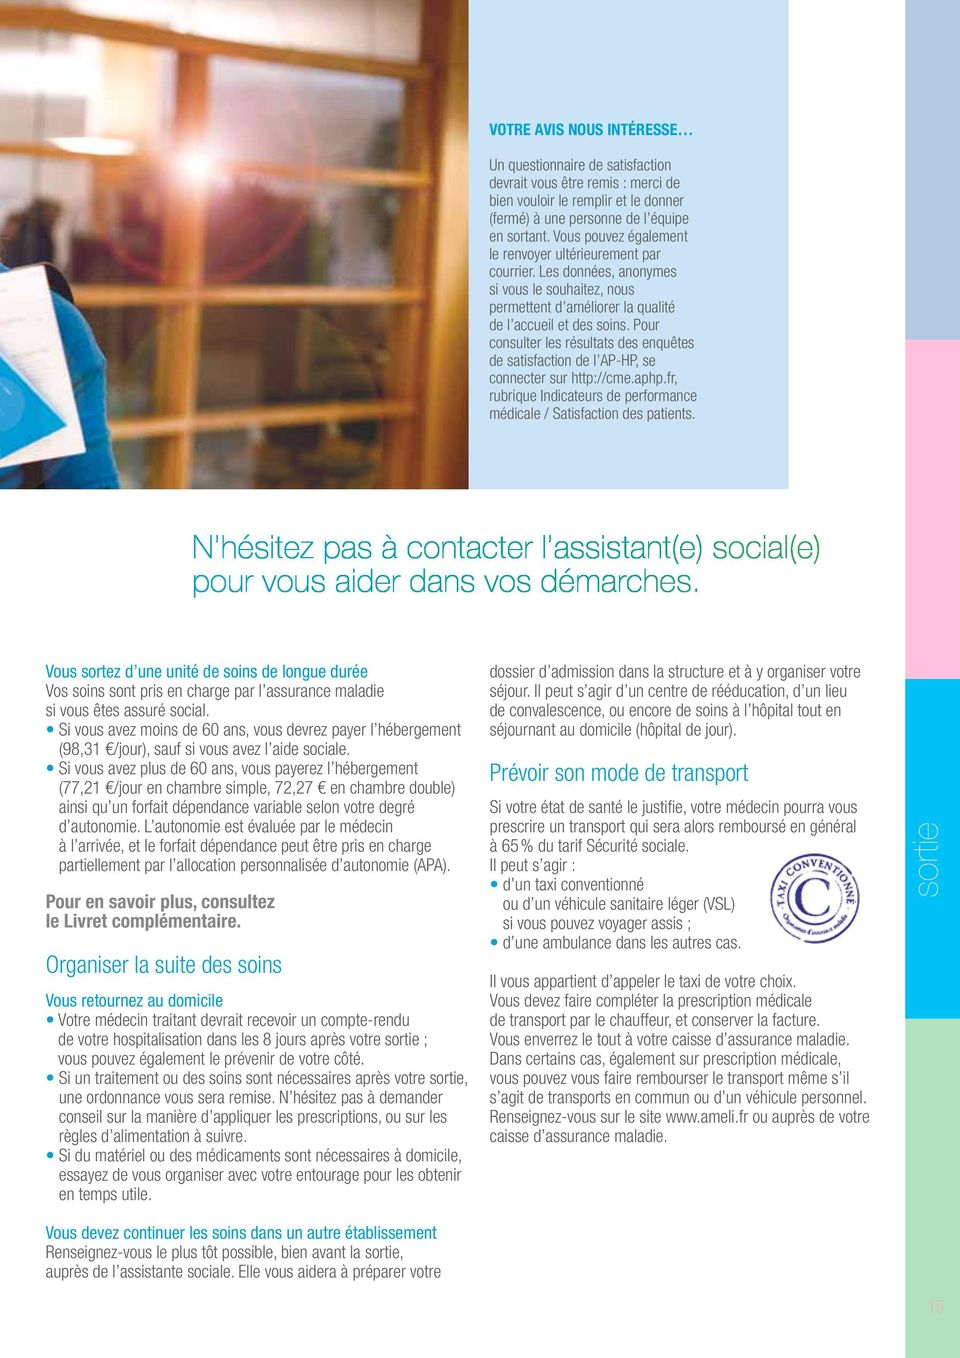 Pour consulter les résultats des enquêtes de satisfaction de l AP-HP, se connecter sur http://cme.aphp.fr, rubrique Indicateurs de performance médicale / Satisfaction des patients.